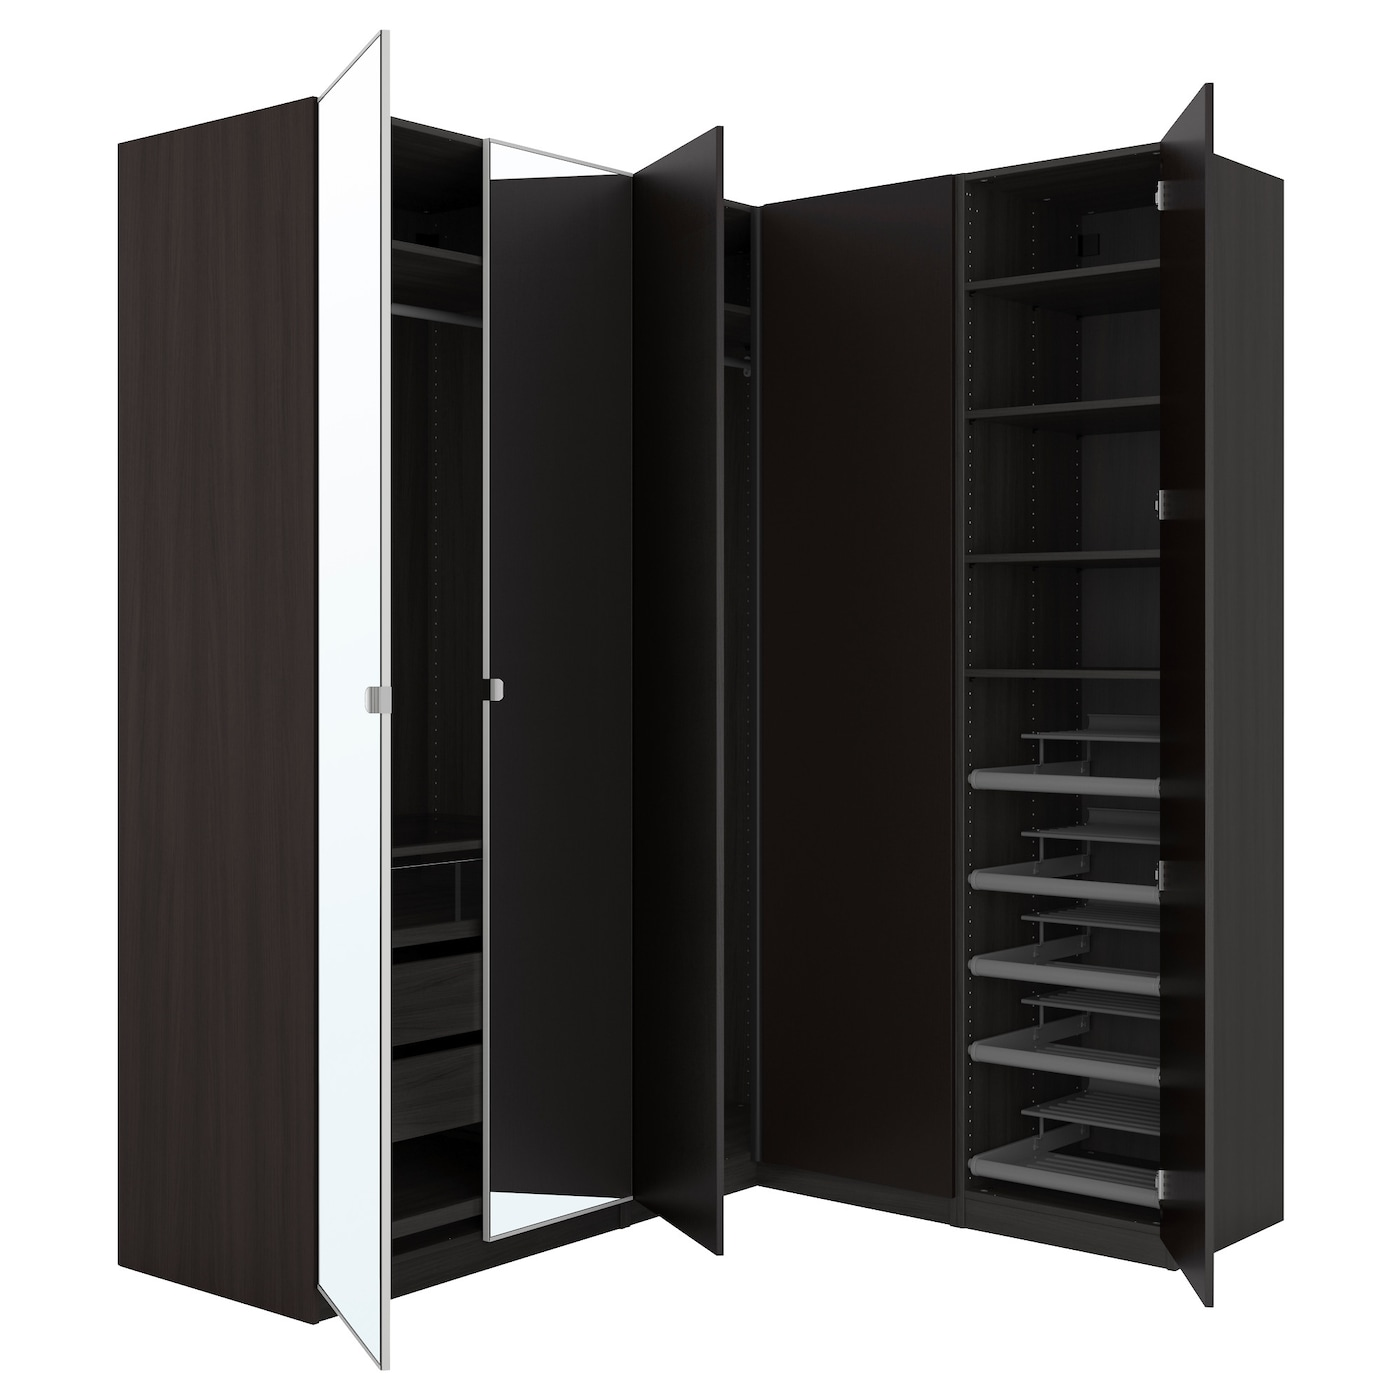 pax corner wardrobe black brown nexus vikedal 210 160x236. Black Bedroom Furniture Sets. Home Design Ideas